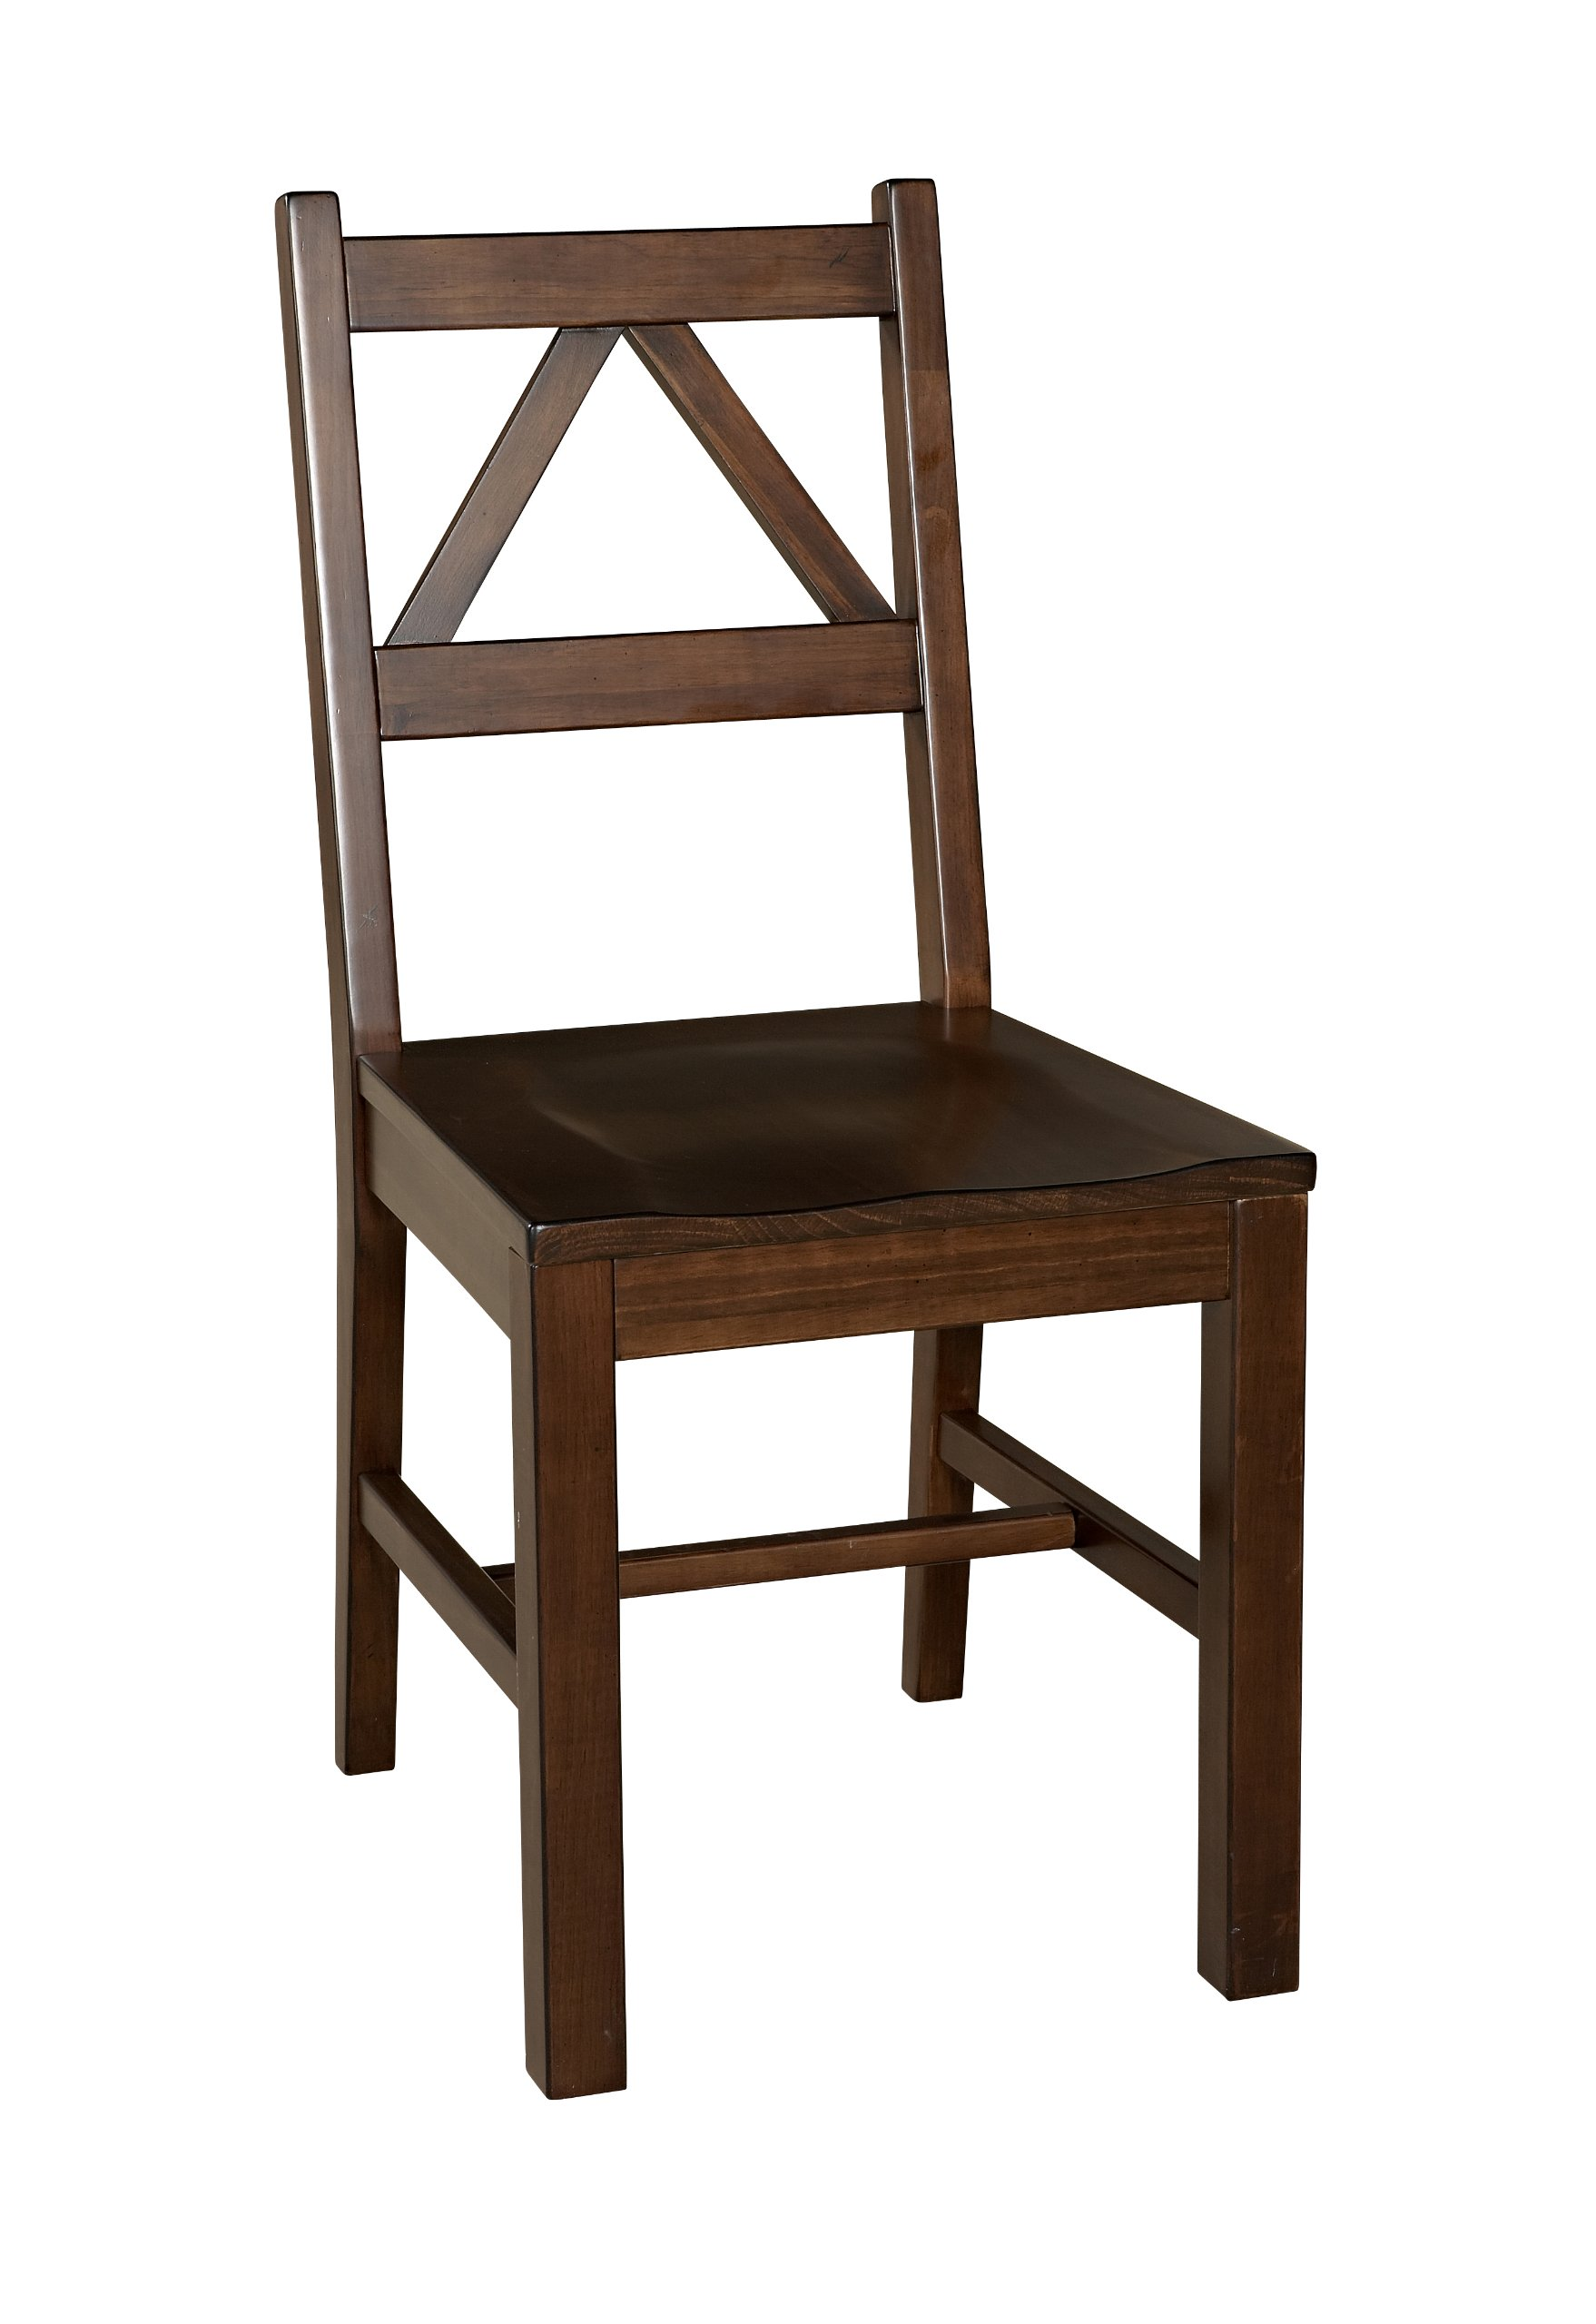 Linon Home Decor Titian Chair, Antique Tobacco Finish